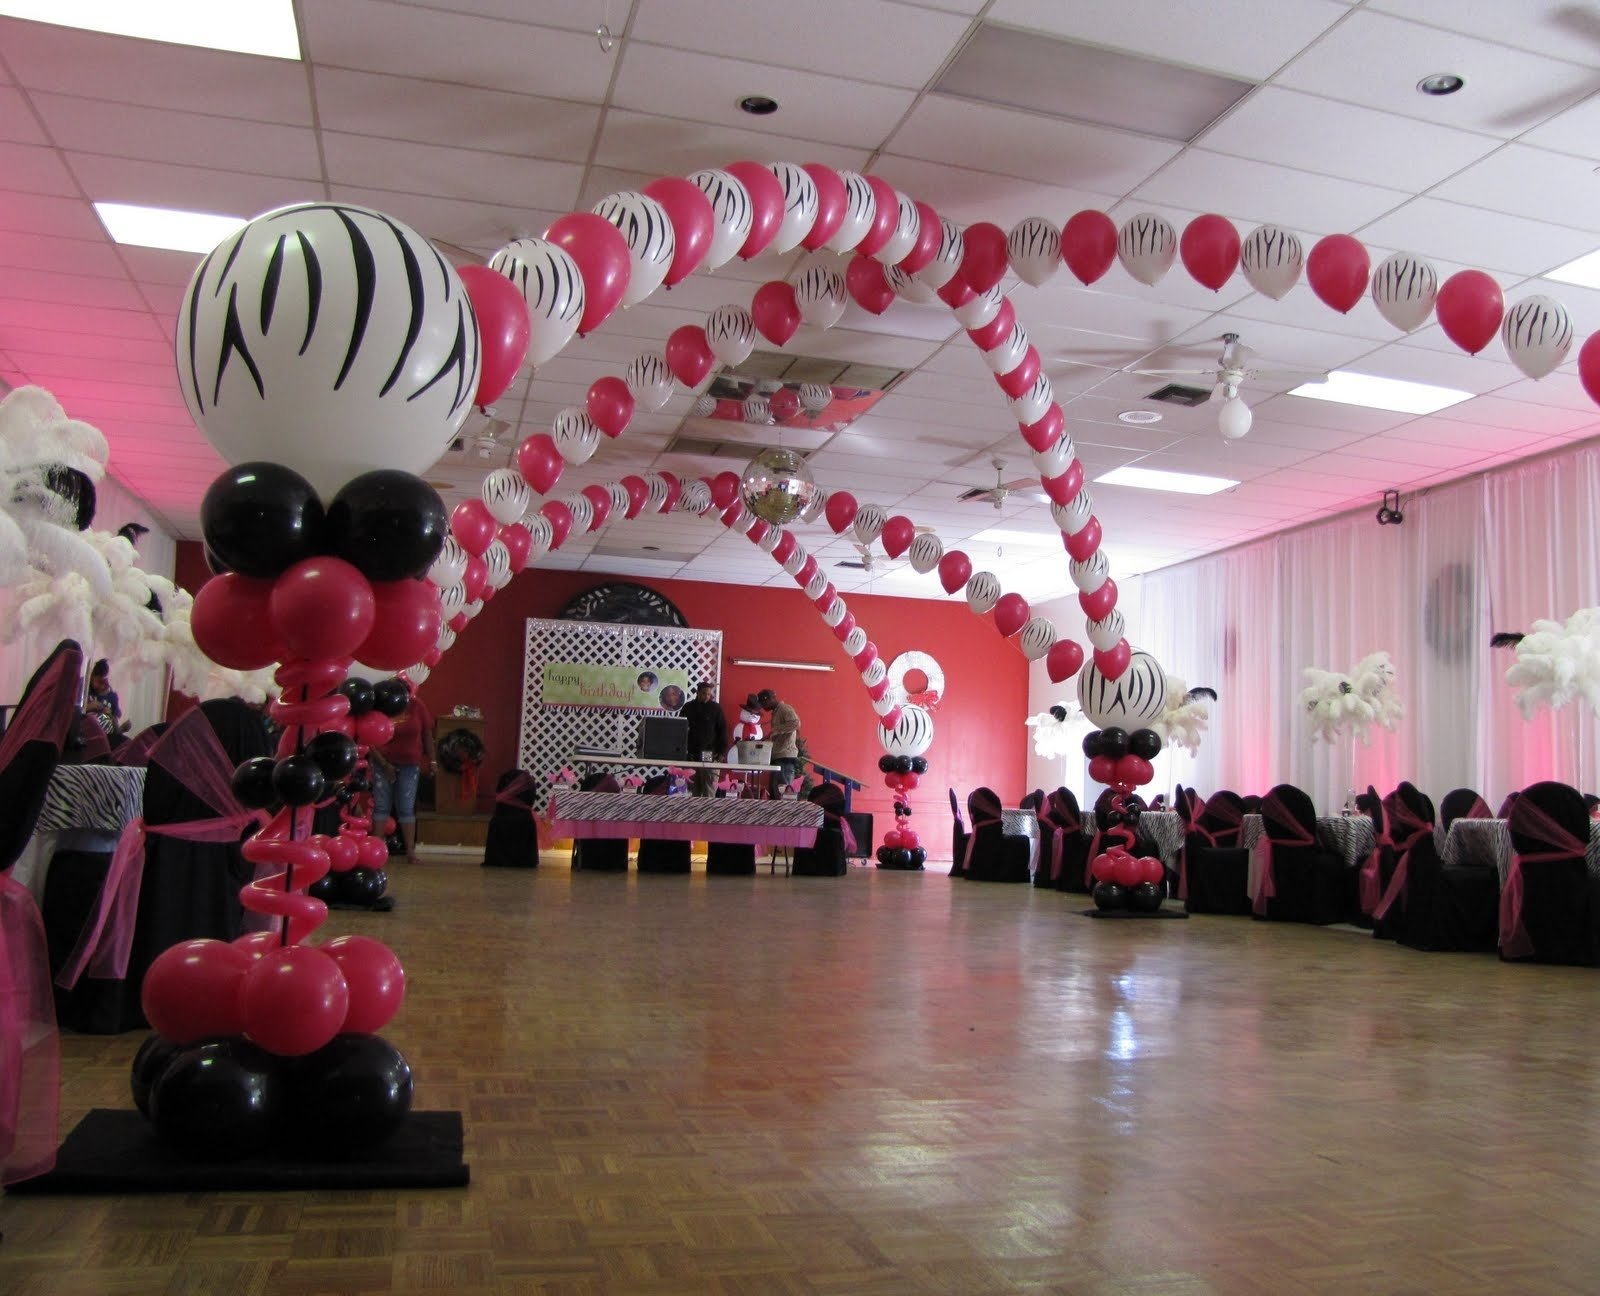 10 Awesome Ideas For A 16Th Birthday Party themes birthday ideas for a cheap 16th birthday party as well as 2020